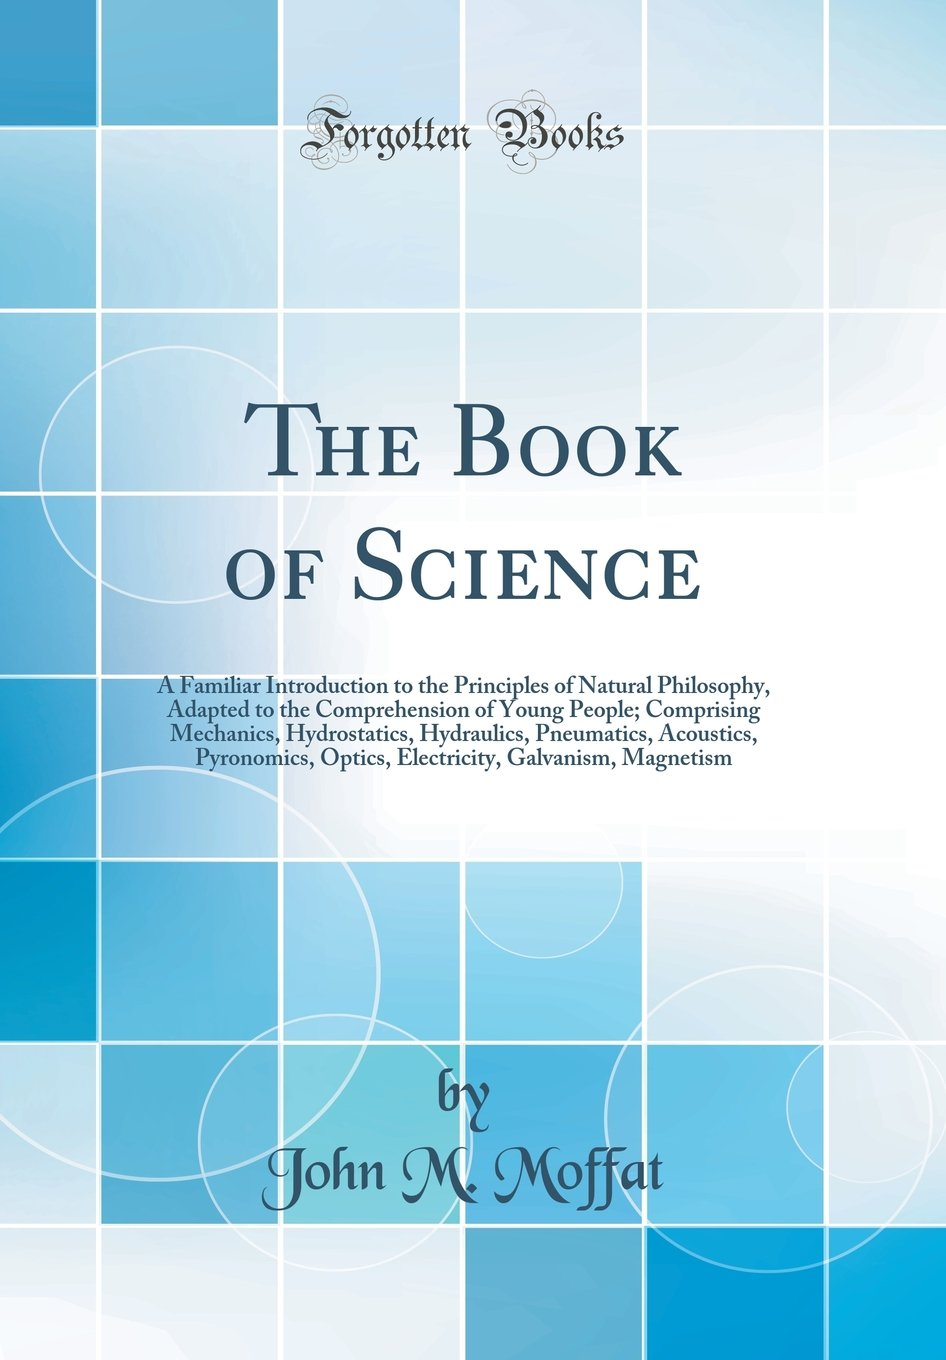 The Book of Science: A Familiar Introduction to the Principles of Natural Philosophy, Adapted to the Comprehension of Young People; Comprising ... Optics, Electricity, Galvanism, Magnetis PDF